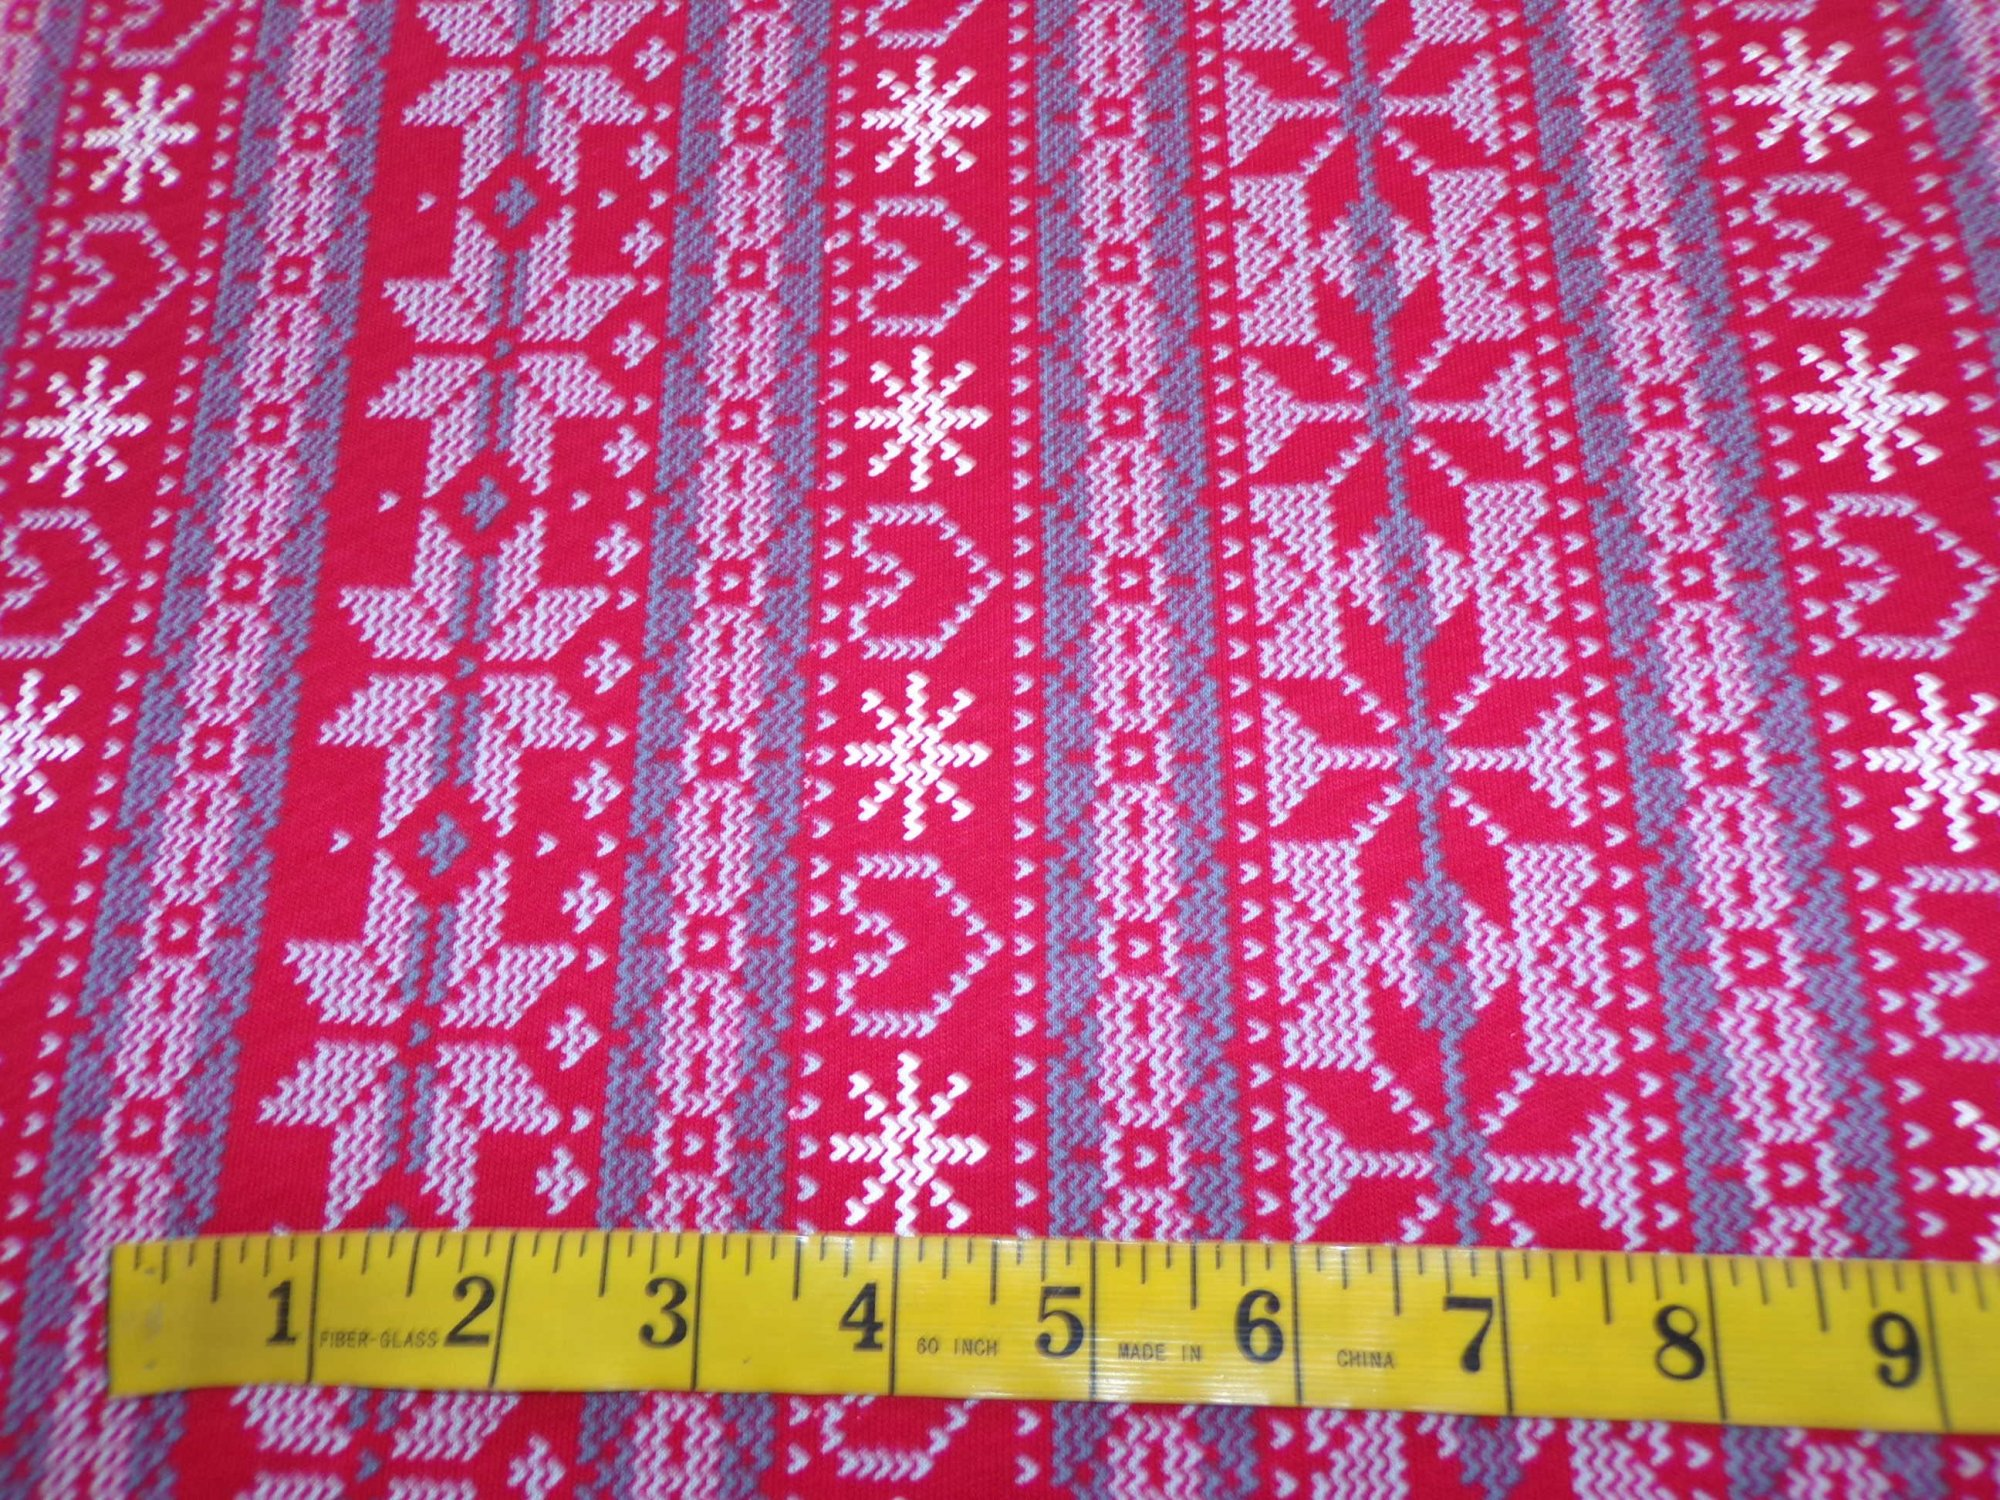 Cotton Jersey - Red and Gray Snowflake and Hearts